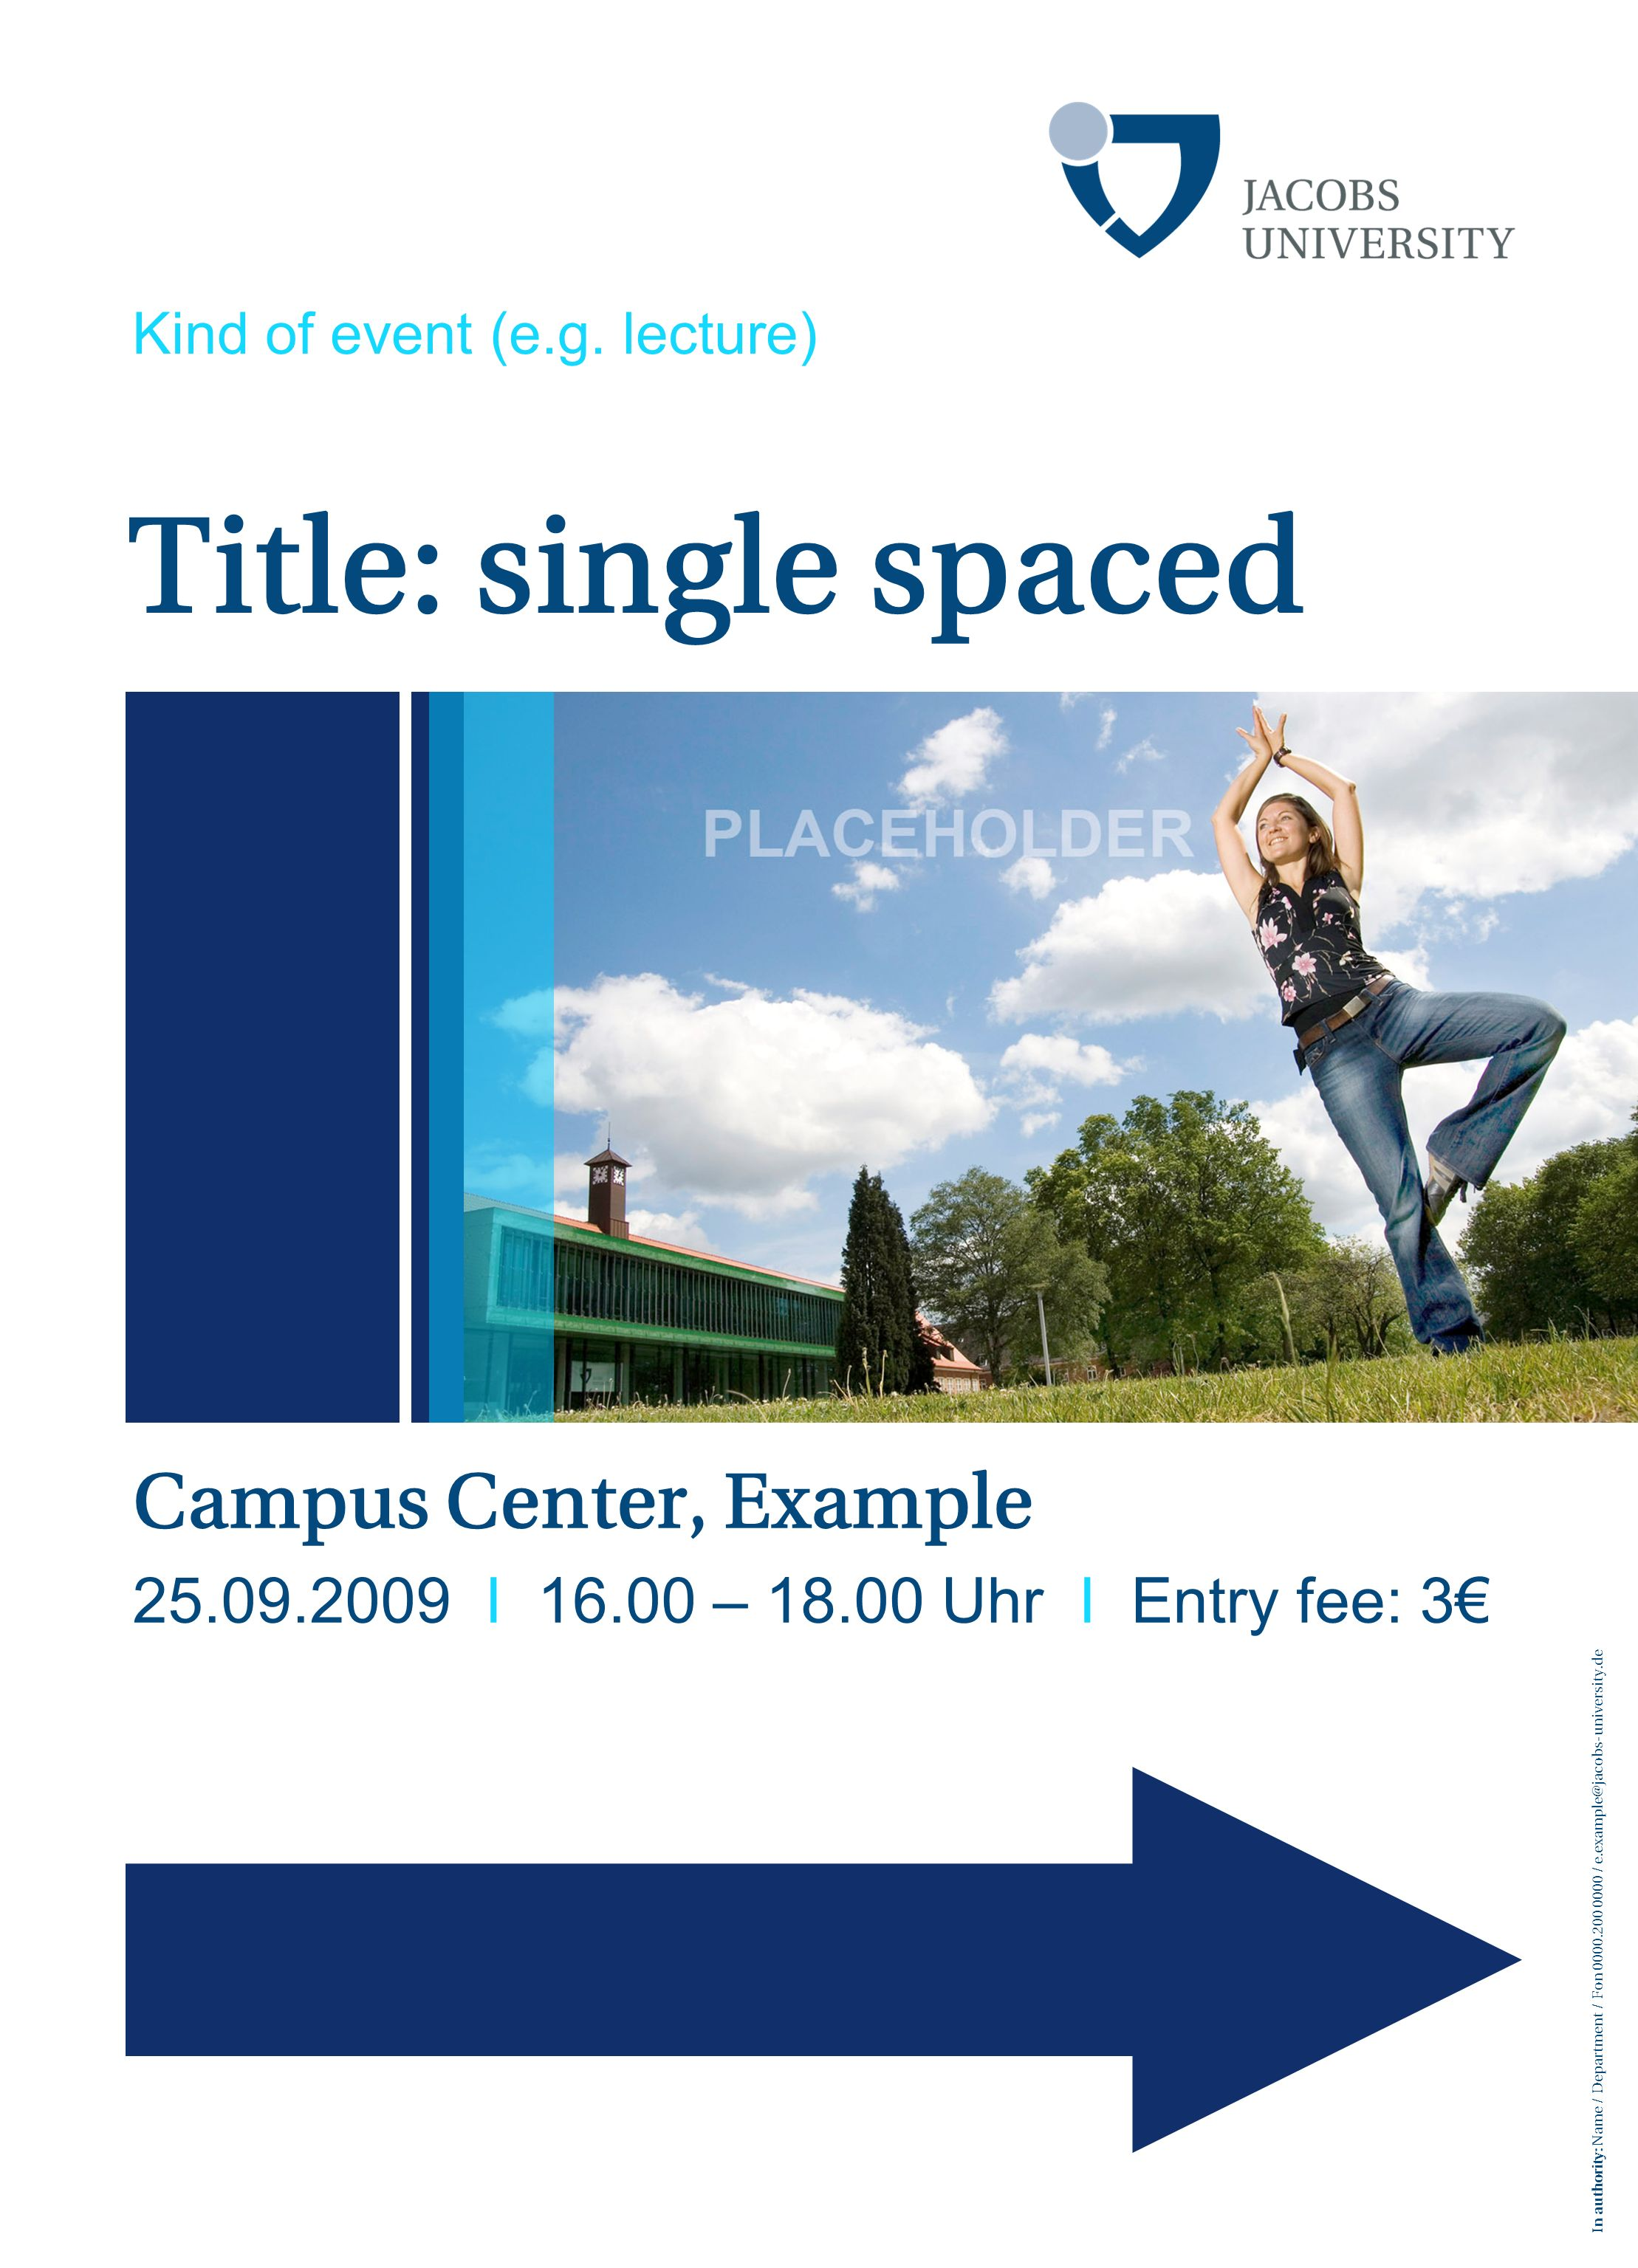 In authority: Name / Department / Fon 0000.200 0000 / e.example@jacobs-university.de Title: single spaced Campus Center, Example 25.09.2009 I 16.00 –